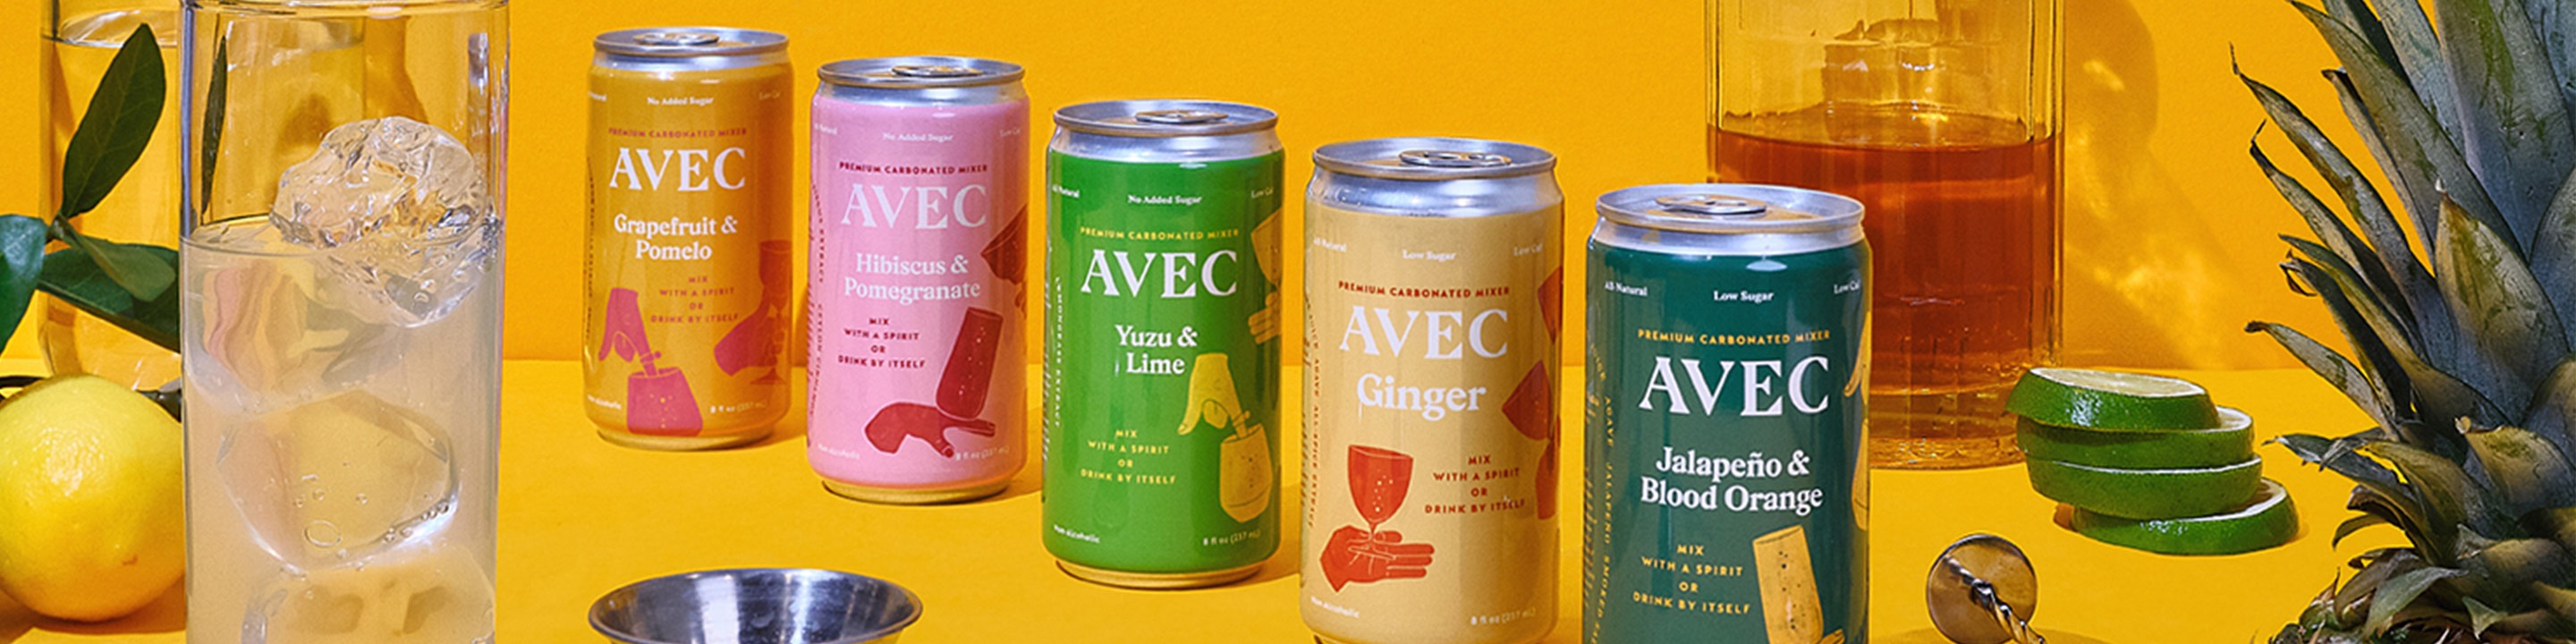 AVEC, a healthy alternative that makes drinking a little better for you without making it any less fun. Our five uniquely delicious, low calorie, low sugar flavors are made from real juices and natural botanicals, made to be mixed with your favorite liquor. And your favorite people.